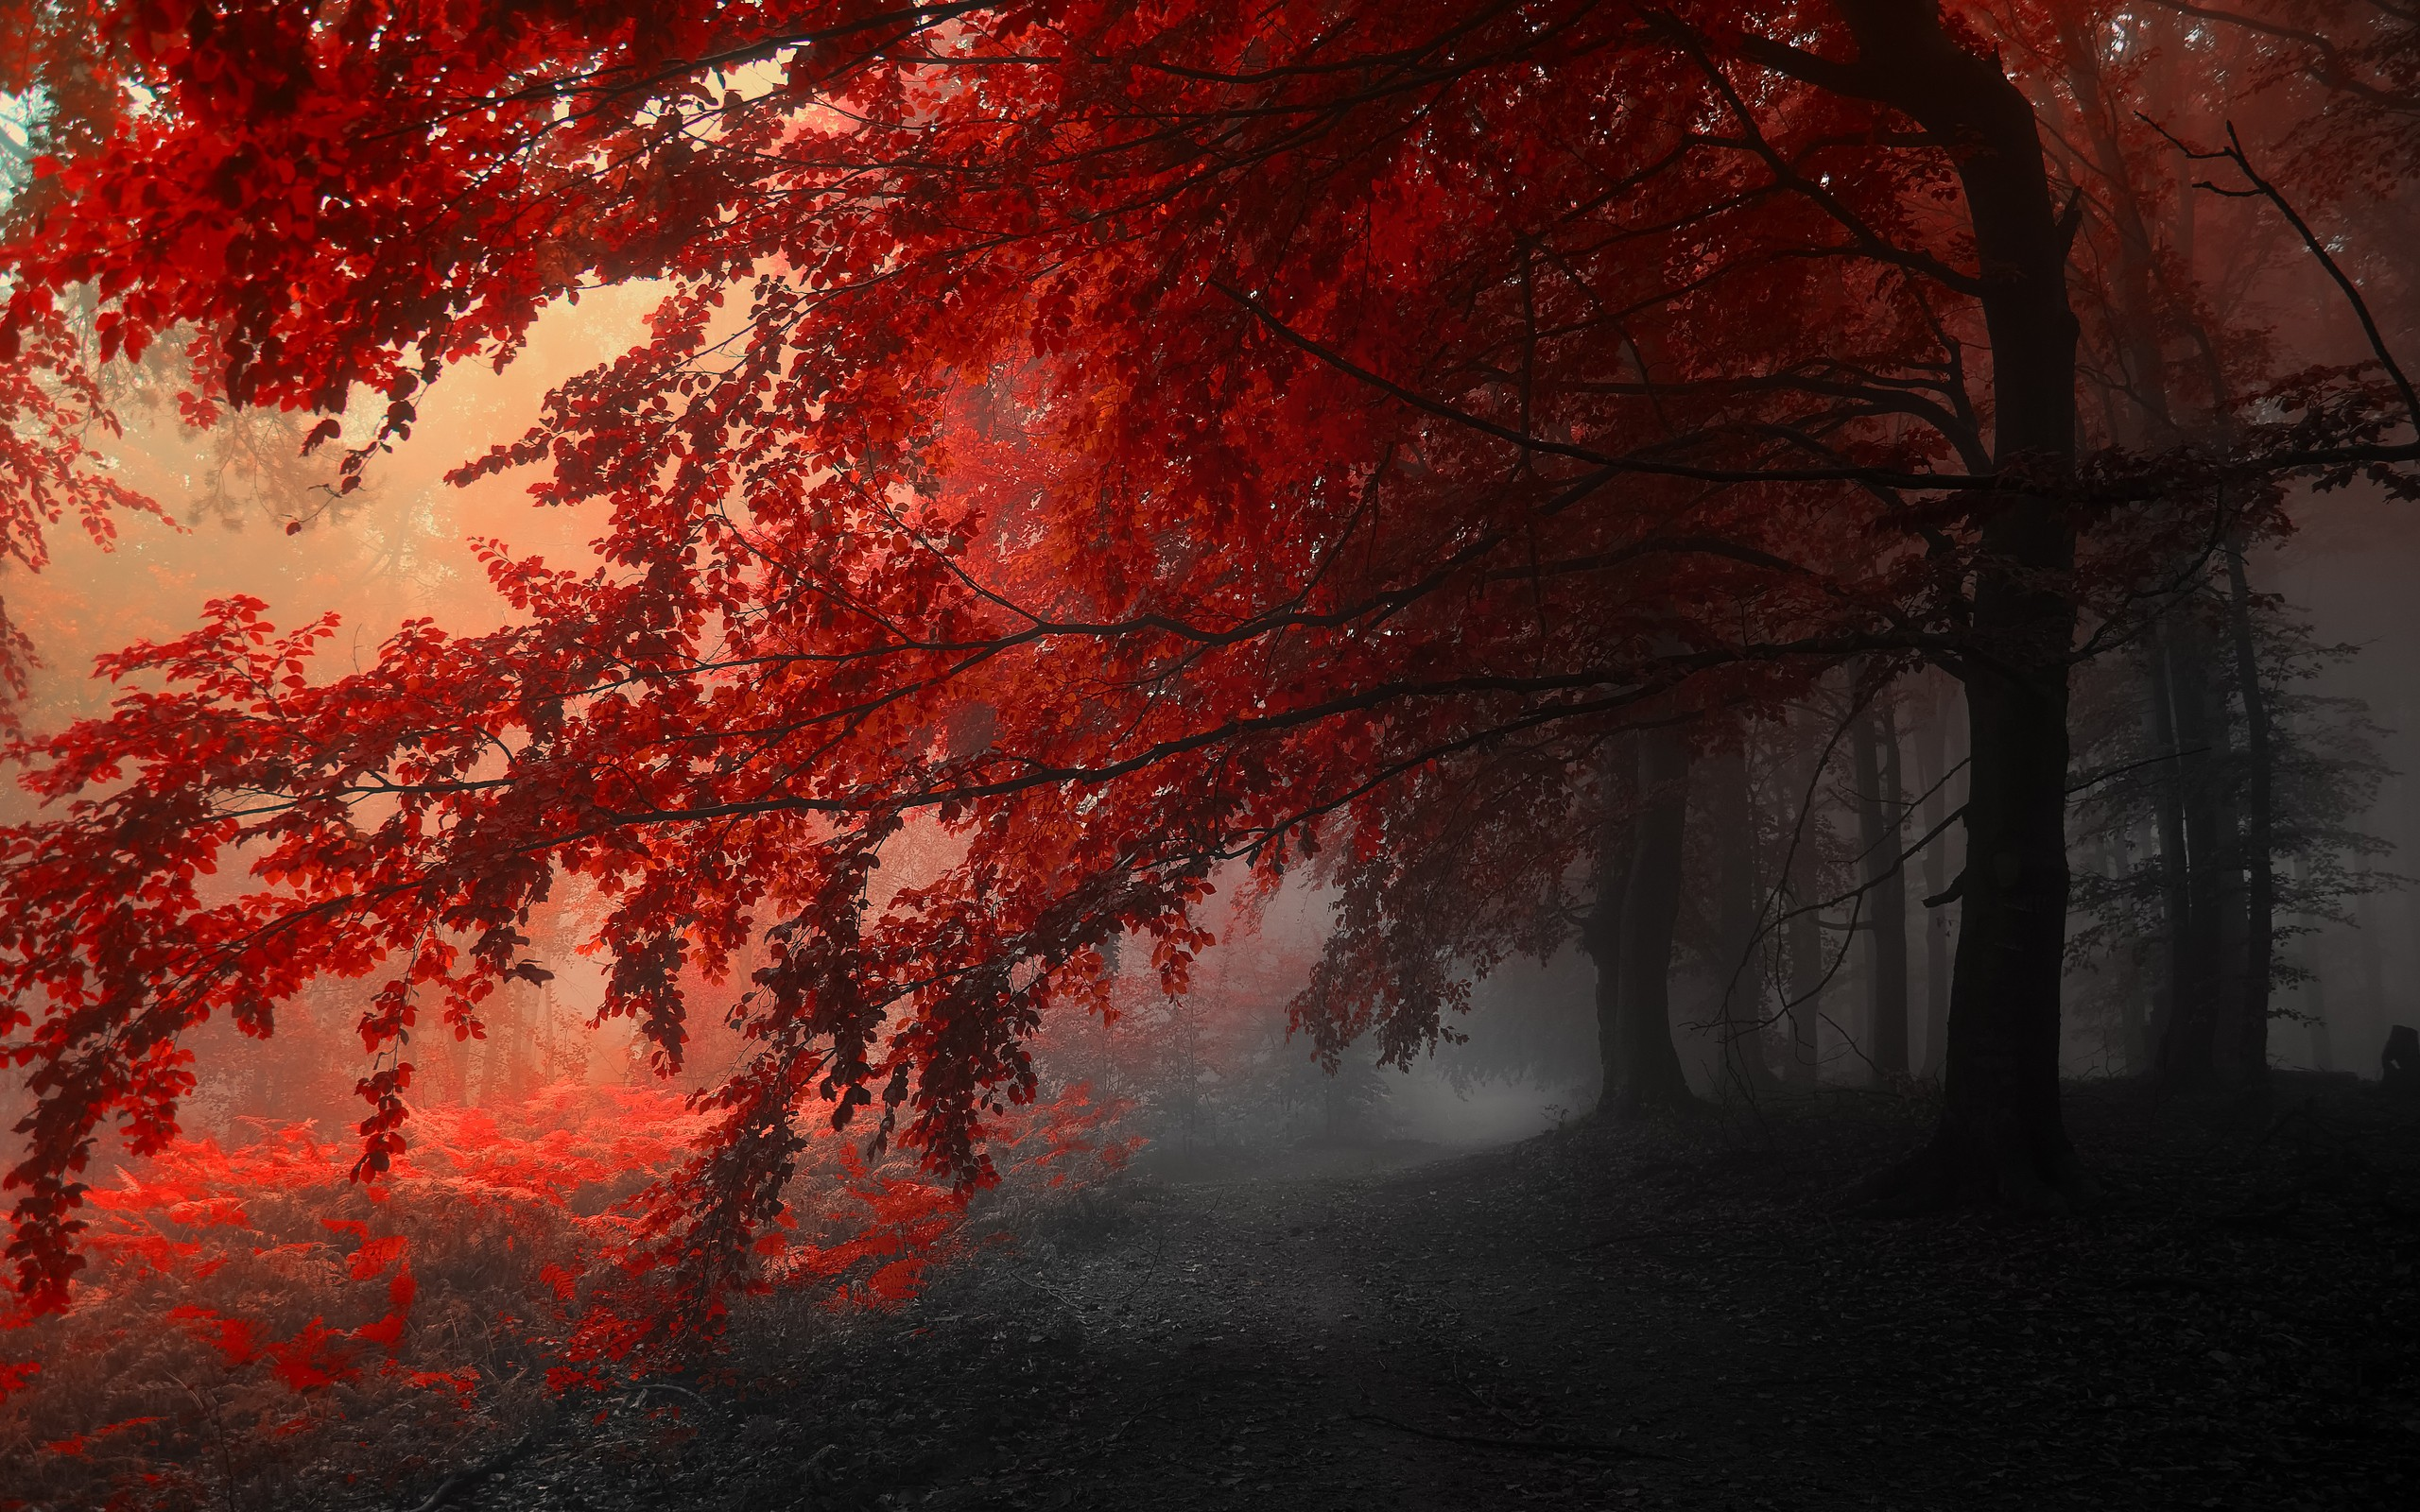 General 2560x1600 forest trees red leaves mist selective coloring nature